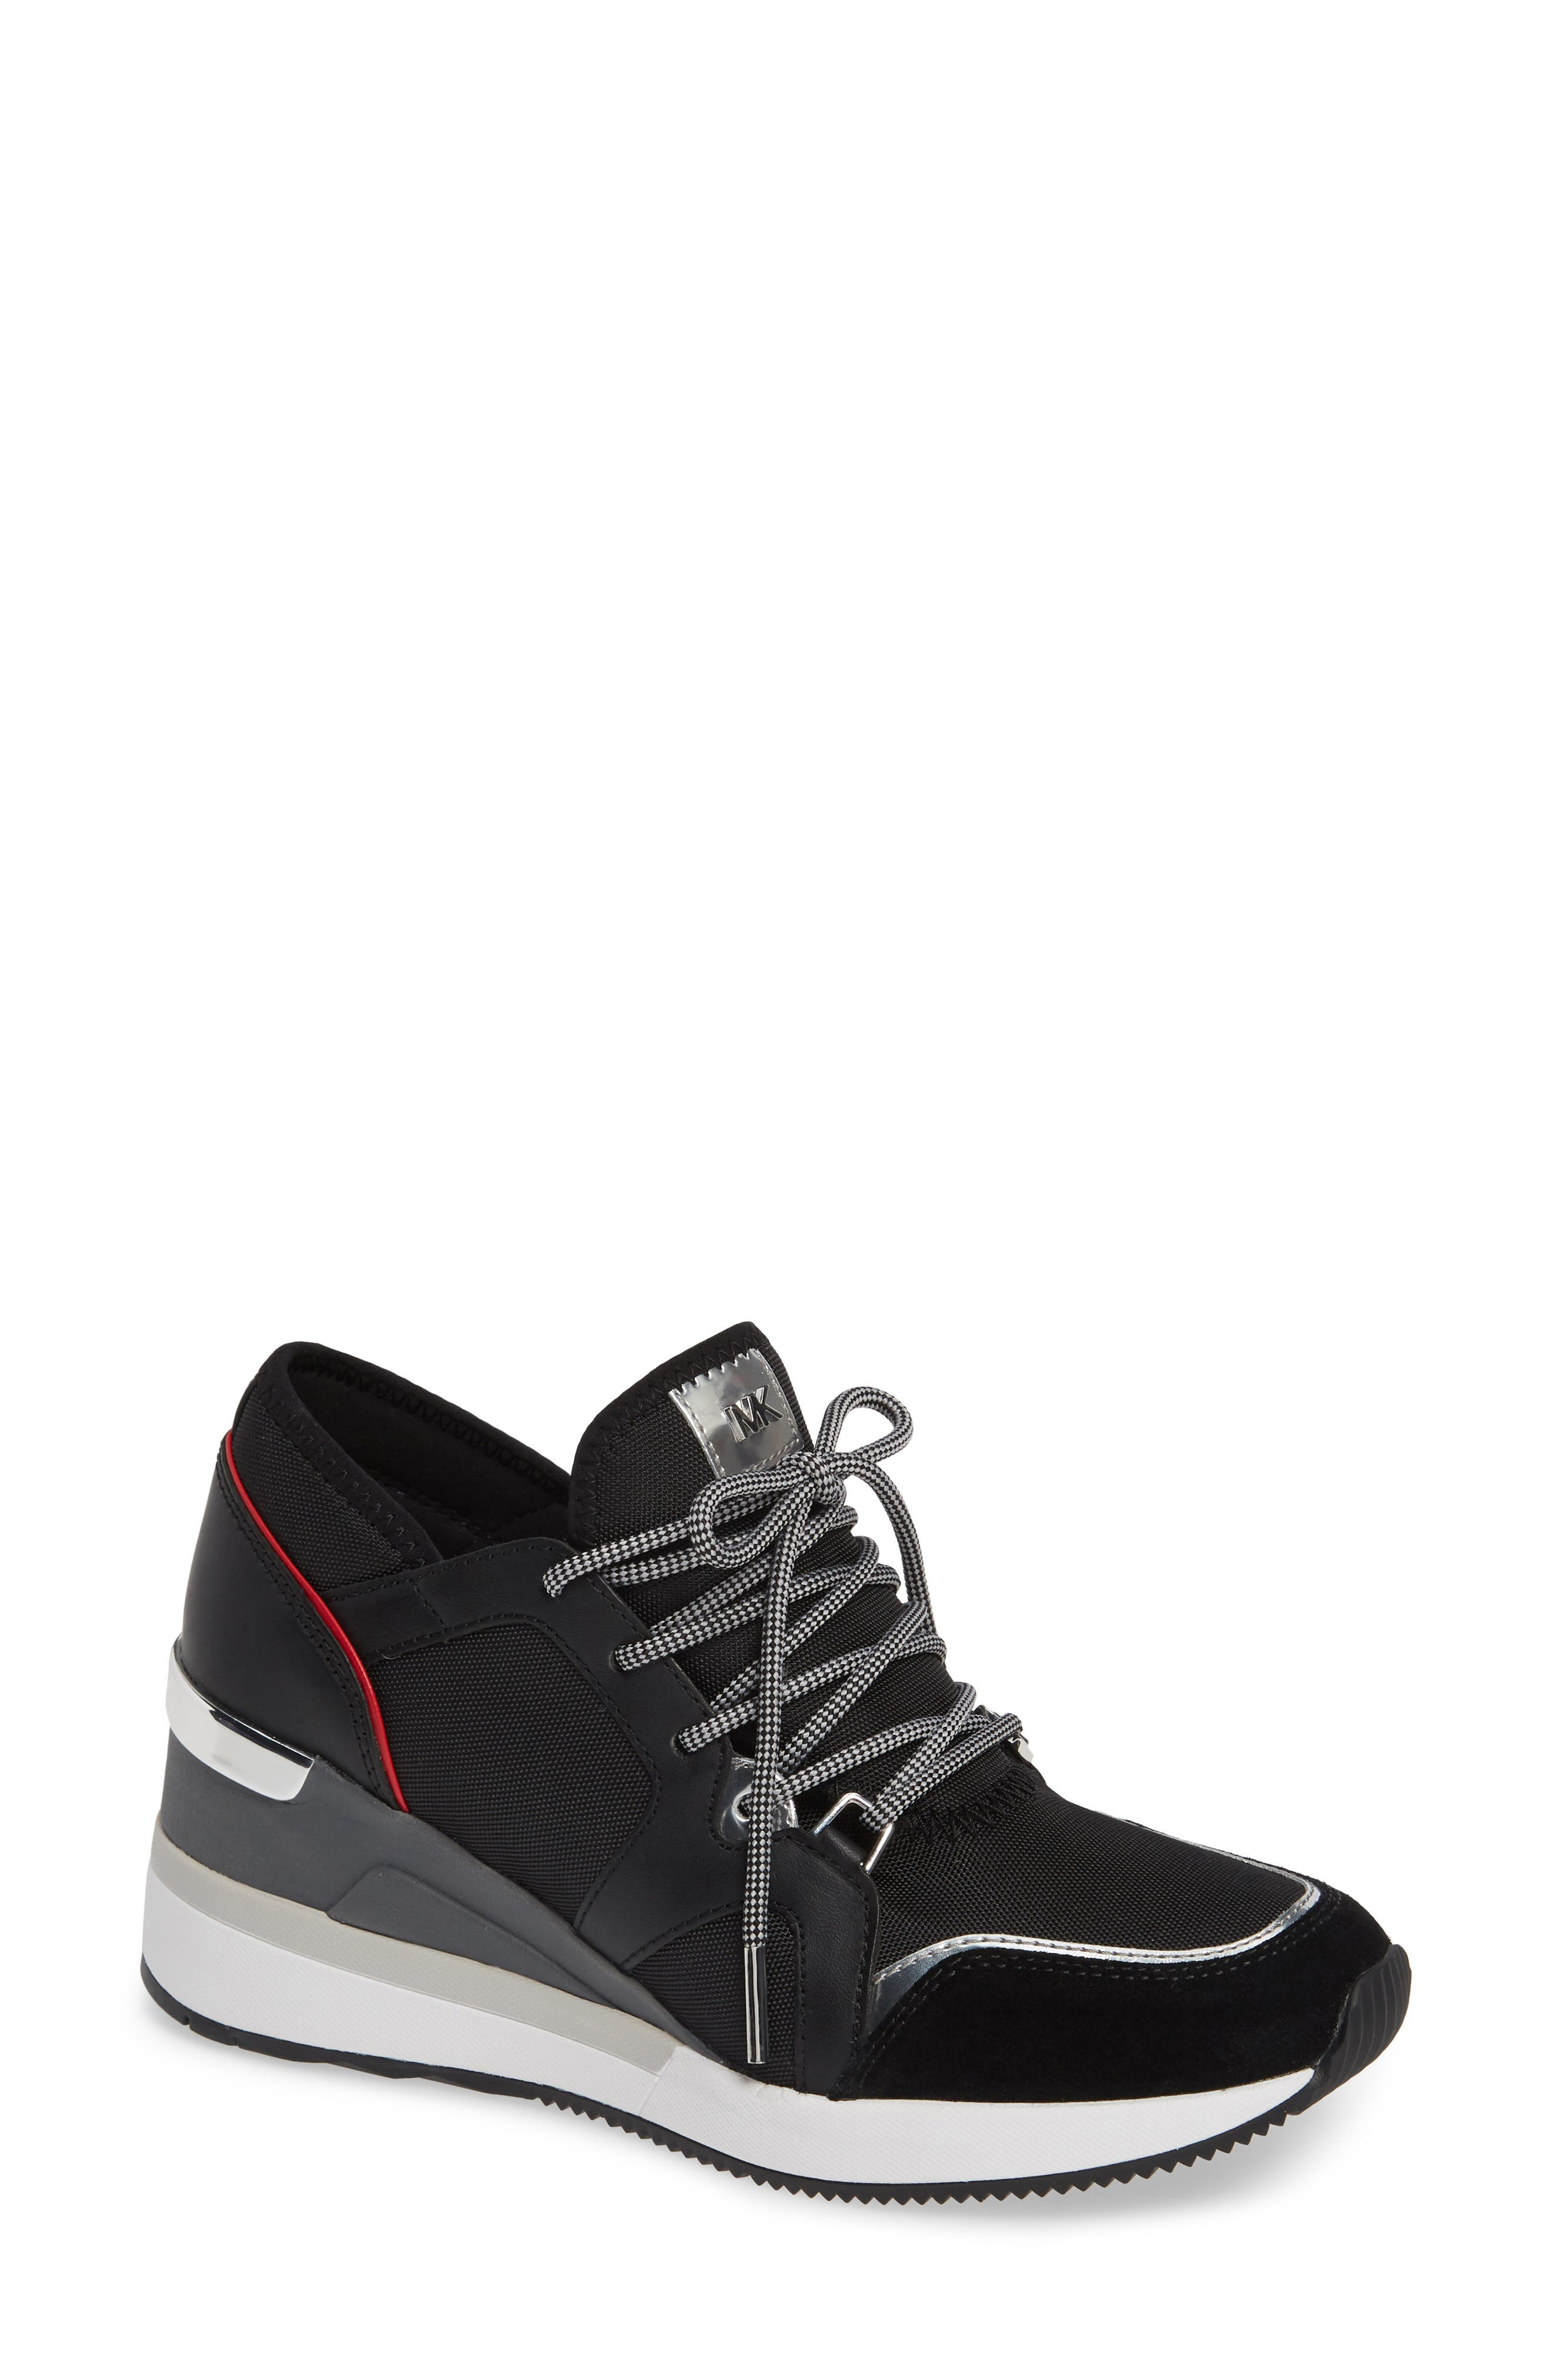 Scout Trainer Wedge Sneaker,                             Main thumbnail 1, color,                             001